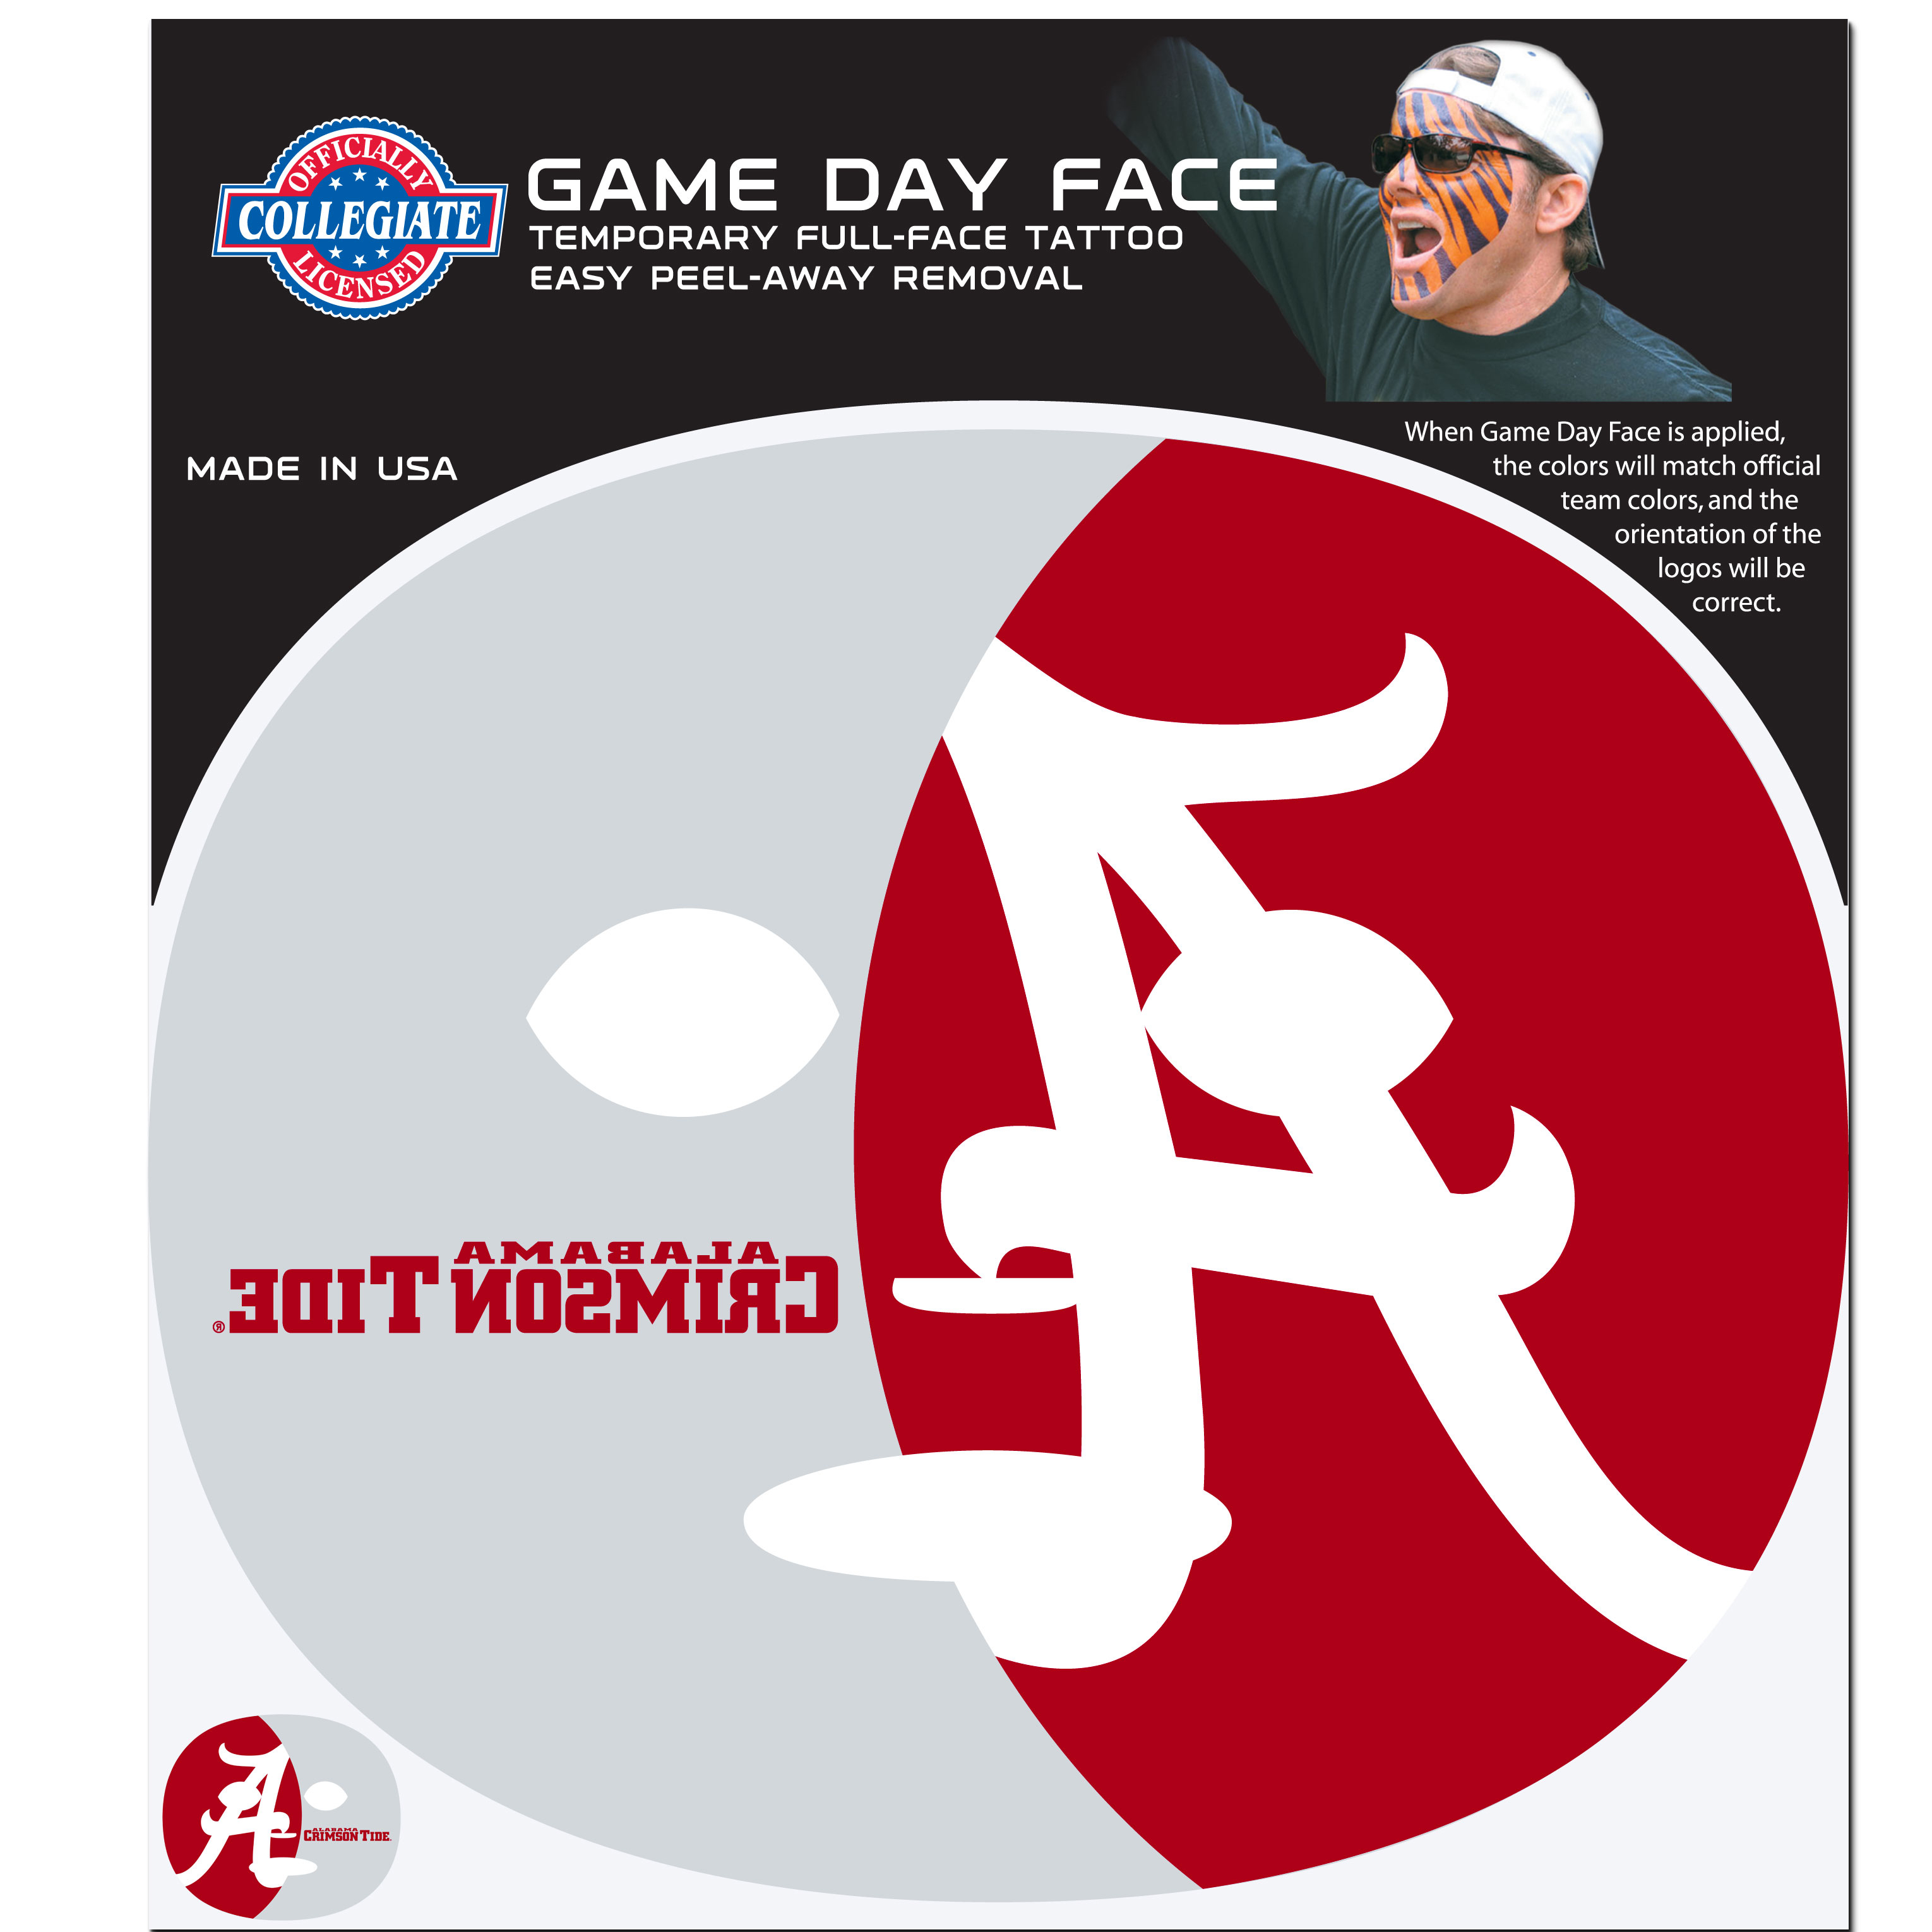 Alabama Crimson Tide Game Face Temporary Tattoo - No better way to show your Alabama Crimson Tide pride than by painting your face. Siskiyou's Game Day Face Temporary Tattoo isn't your typical face paint. It is a water based application that doesn't smudge, smear or sweat off  while you're wearing it and easily peels off after you're done celebrating your team's big Win! The temporary tattoo is large enough to trim down to fit your face.  Our Game Day Face Temporary Tattoo's are fun for fans of all ages. You may have seen our product before,  these are the same Temporary Face Tattoos as pitched on ABC's Shark Tank.